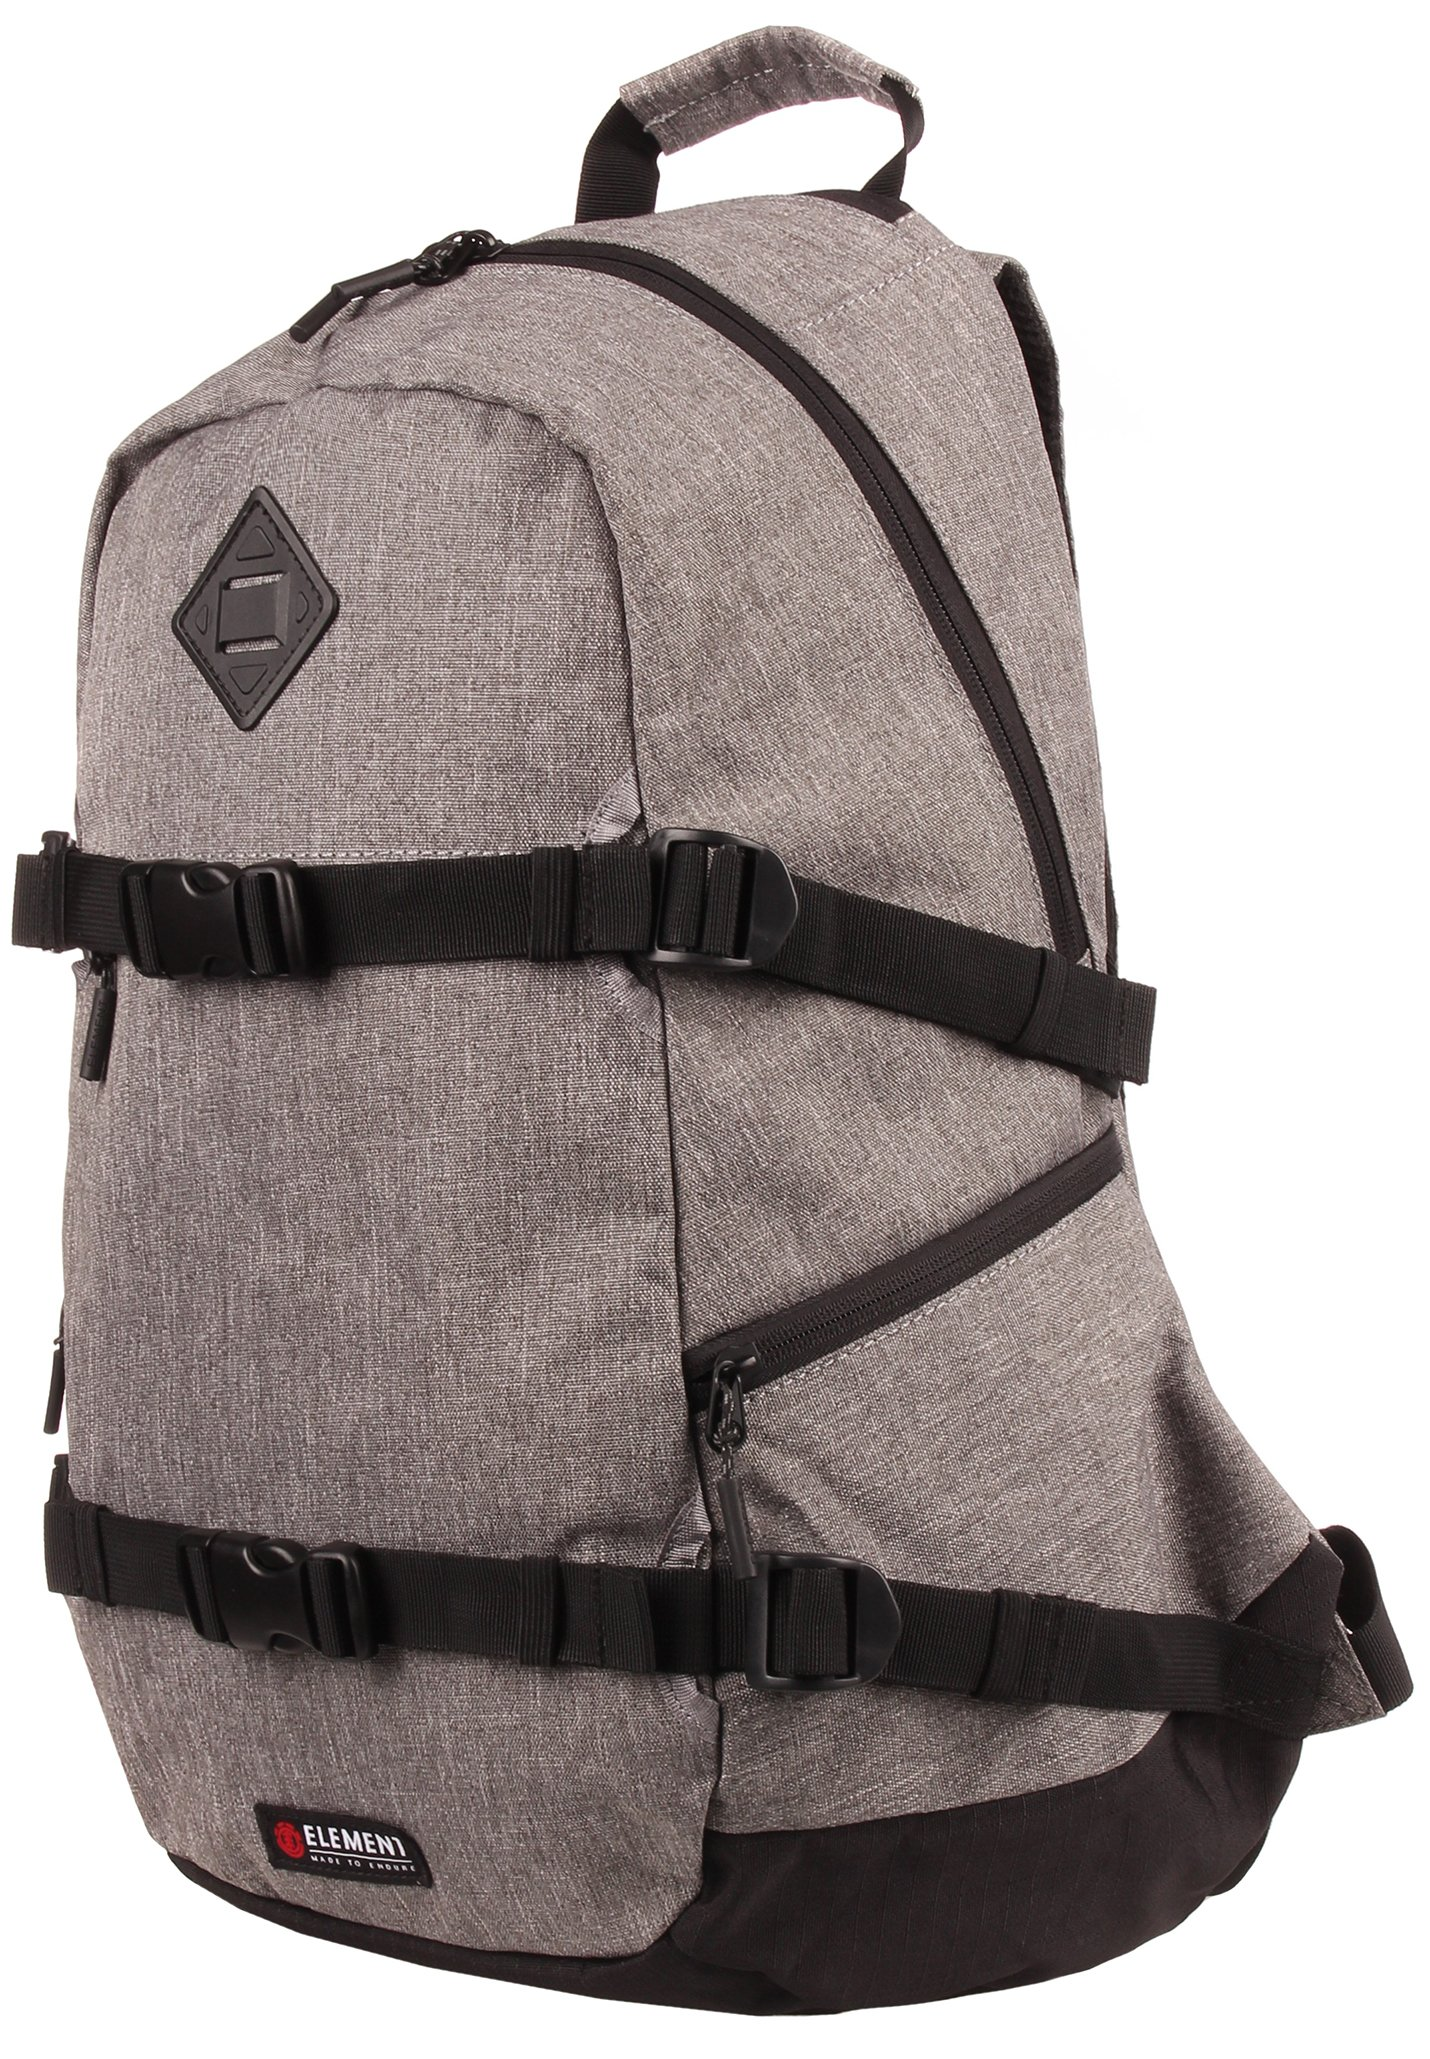 Element JAYWALKER - Tagesrucksack - grey heather/grau - Herrentaschen OTTPW